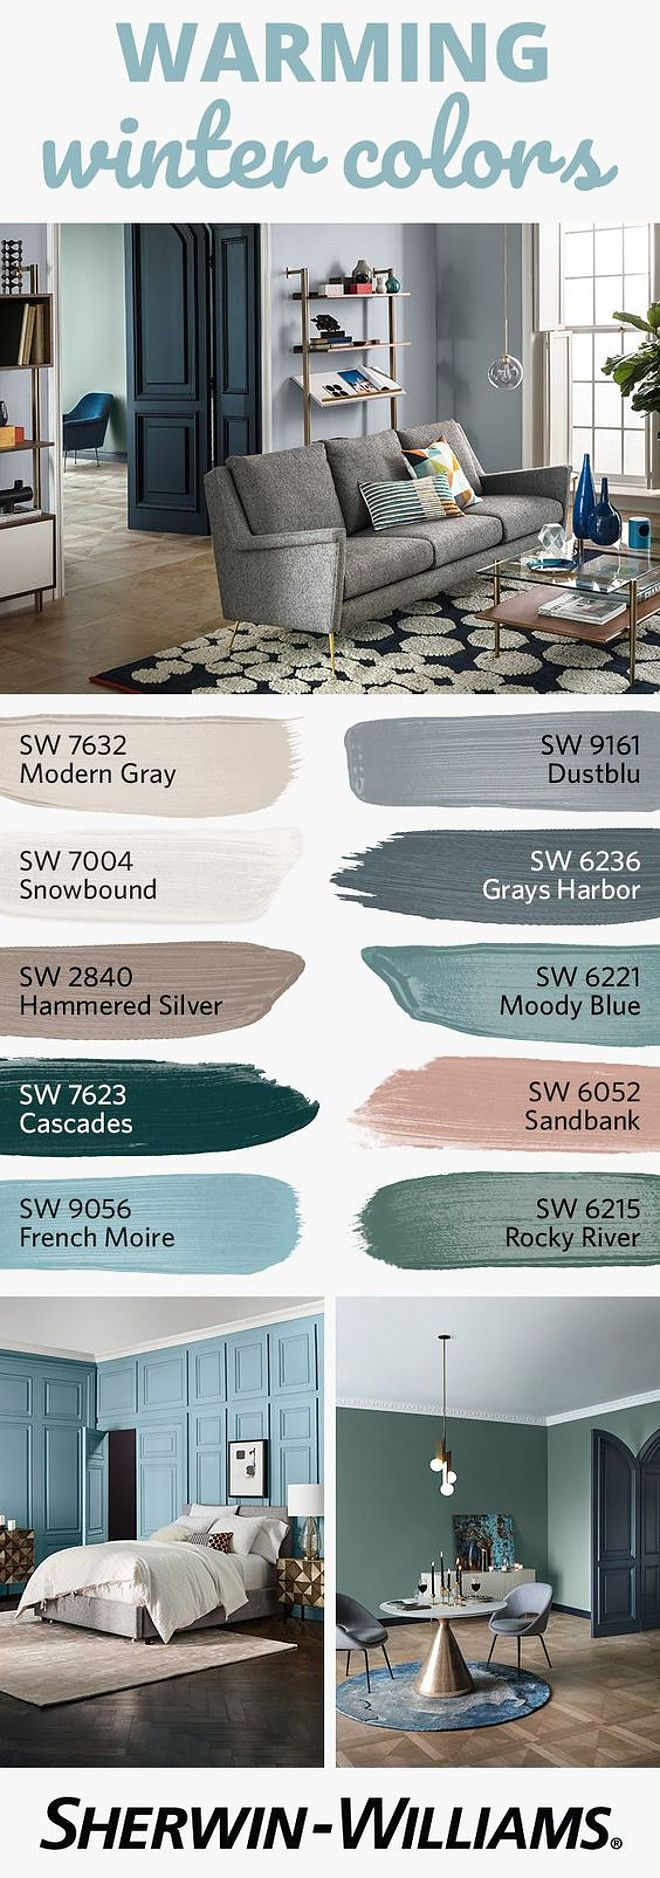 Paintcolors Sherwinwilliams Paint Colors For Home Paint Colors For Living Room Room Paint Colors #sherwin #williams #paint #colors #living #room